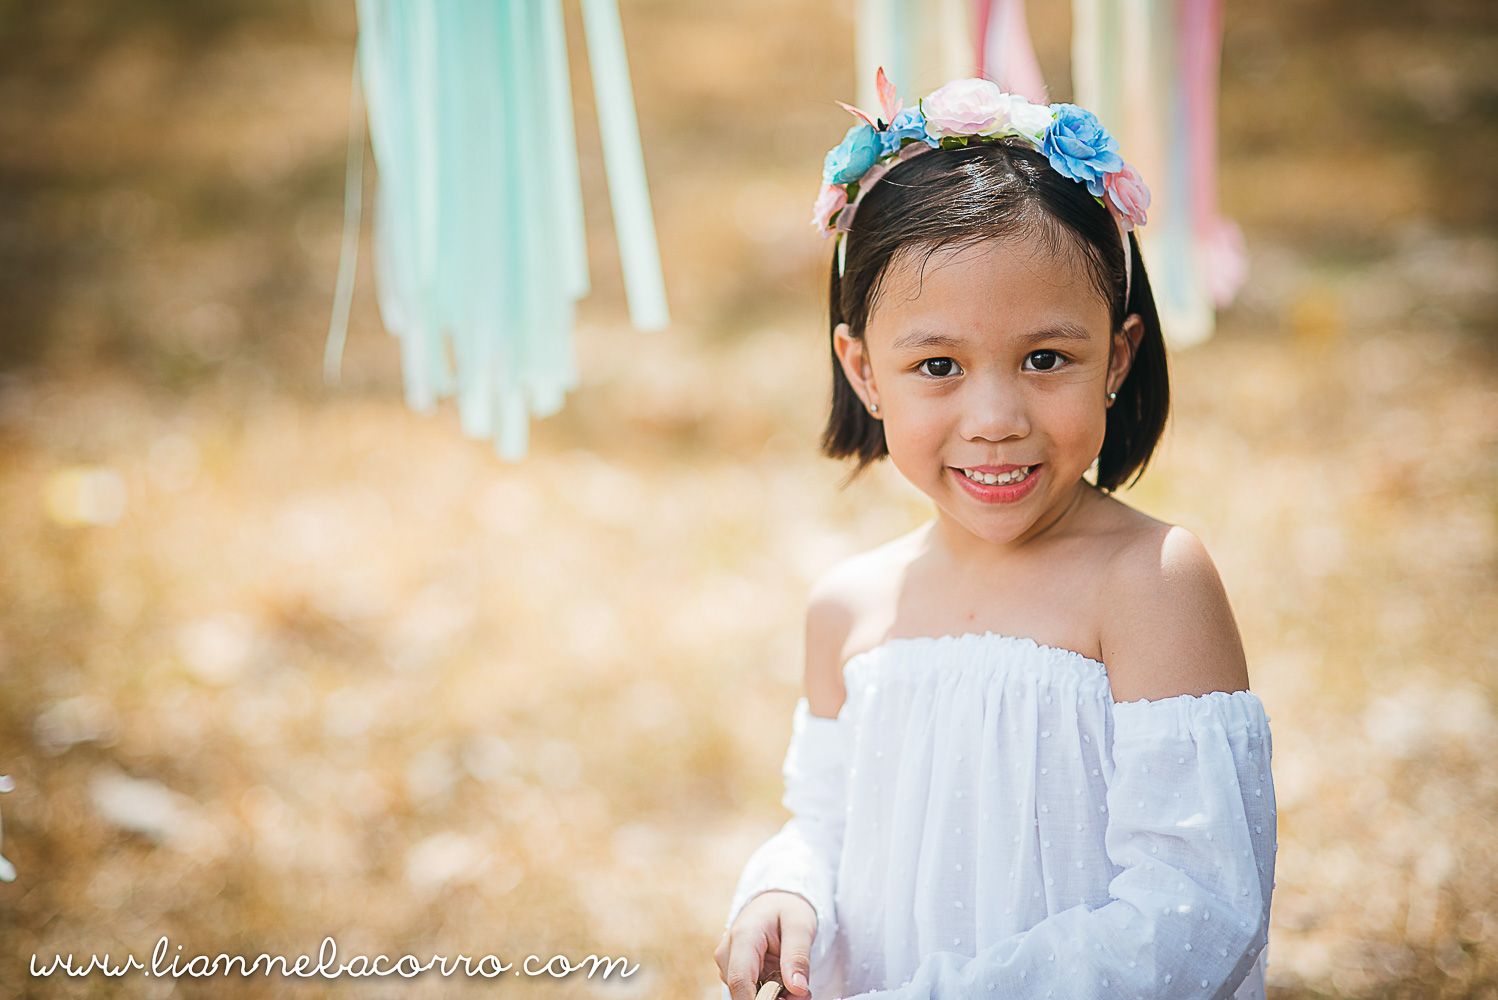 May 2016 - Geli - Family Portrait Photography - Lianne Bacorro - Something Pretty Manila-30